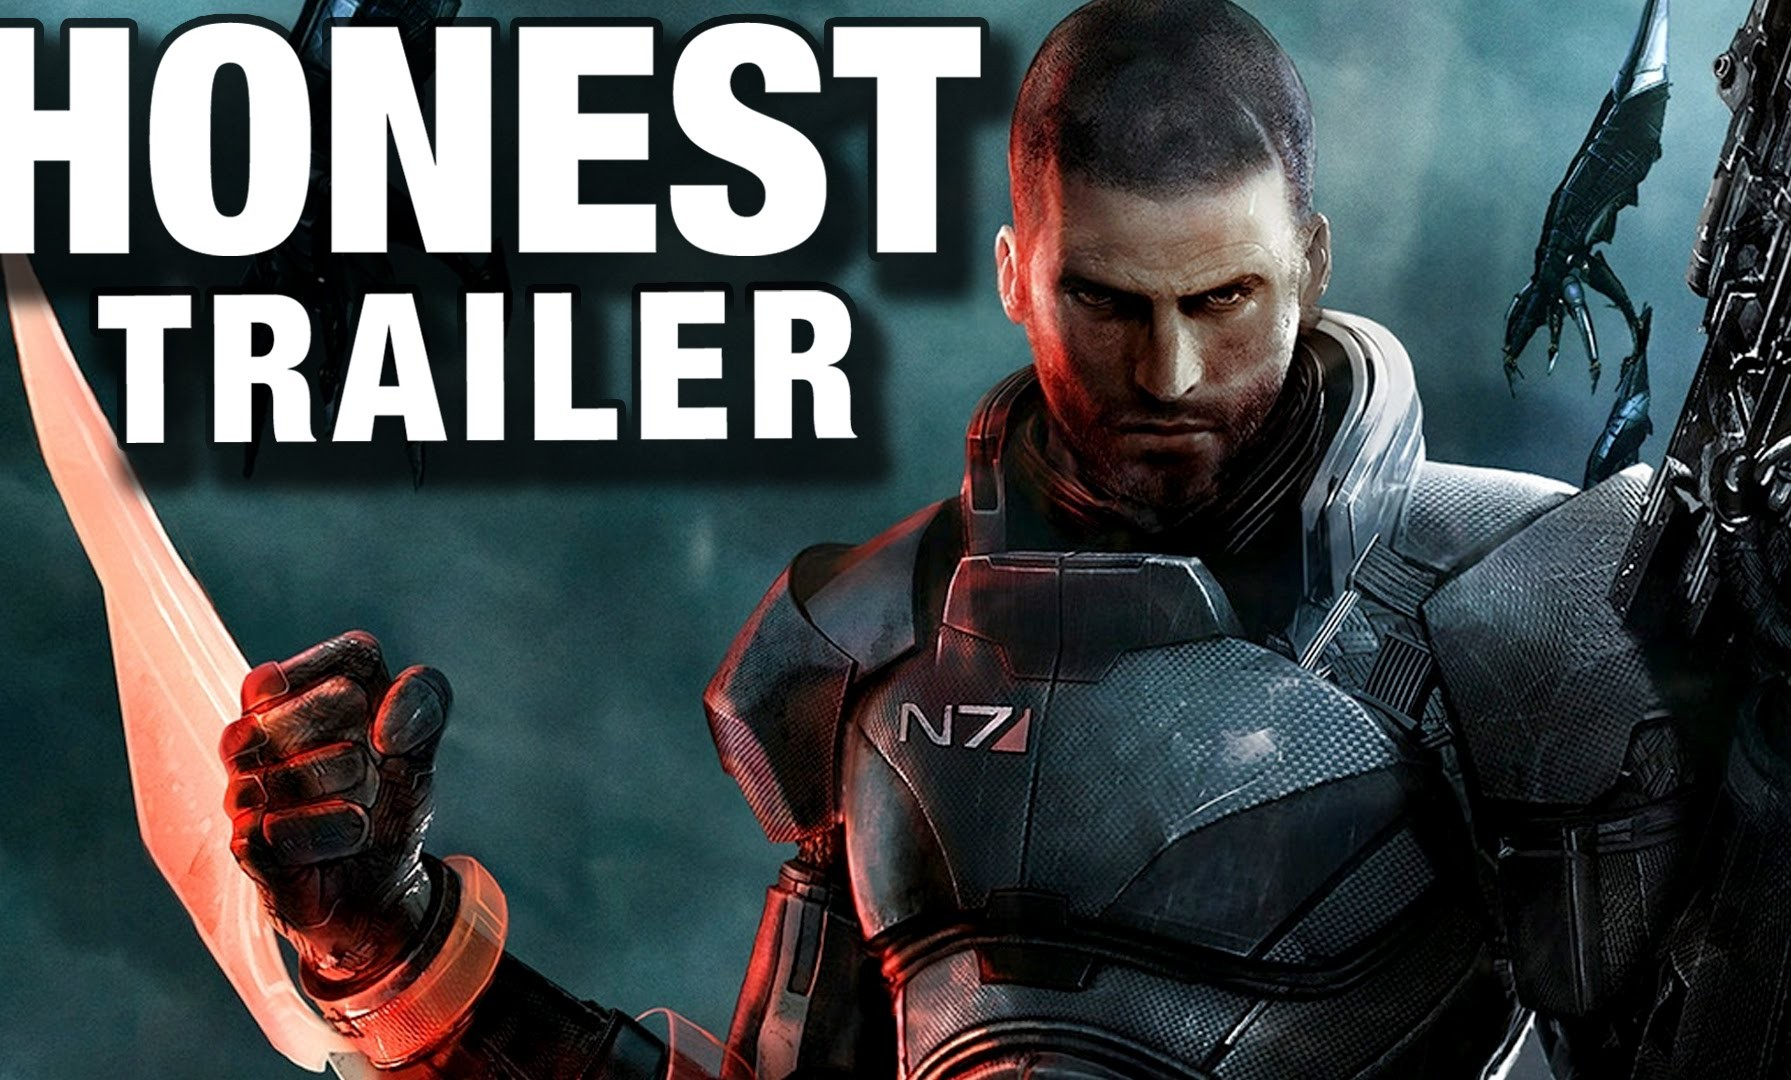 EL TRÁILER HONESTO DE MASS EFFECT